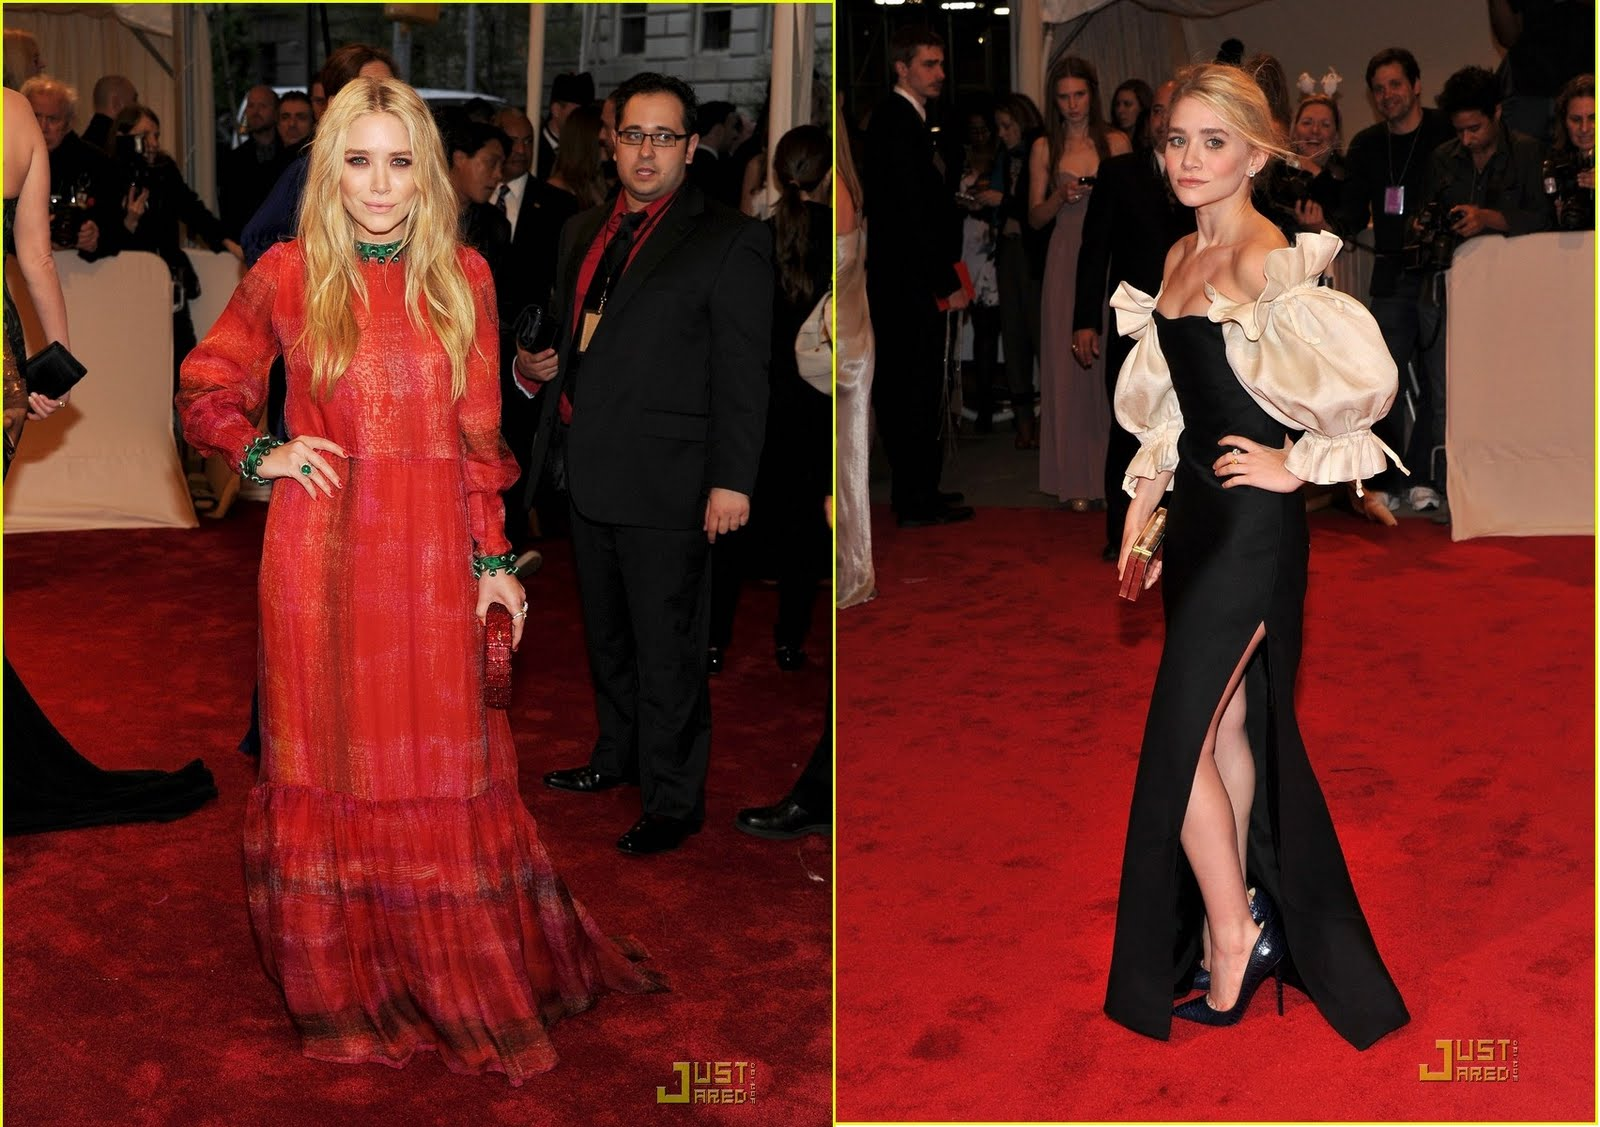 http://2.bp.blogspot.com/-r-GD7btaPxs/TcF7GgmXUjI/AAAAAAAAAP4/bJWdoTzgXvs/s1600/mary-kate-ashley-olsen-met-ball-2011-03.jpg